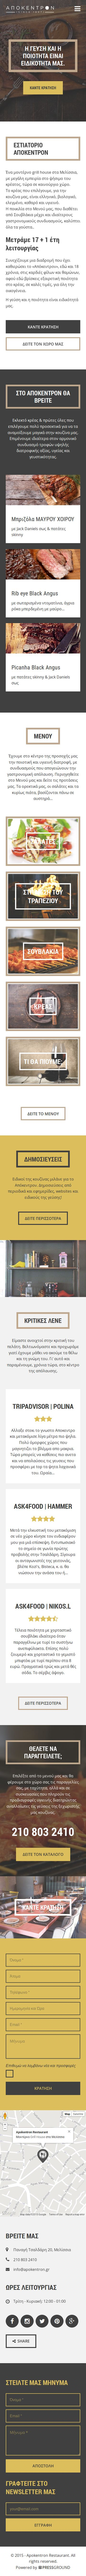 Apokentron is a new age Grill House in Athens, Greece, with a history that counts more than 17 years. The Hardpixel Team designed and developed its new responsive website. - Mobile Responsive Web Design -